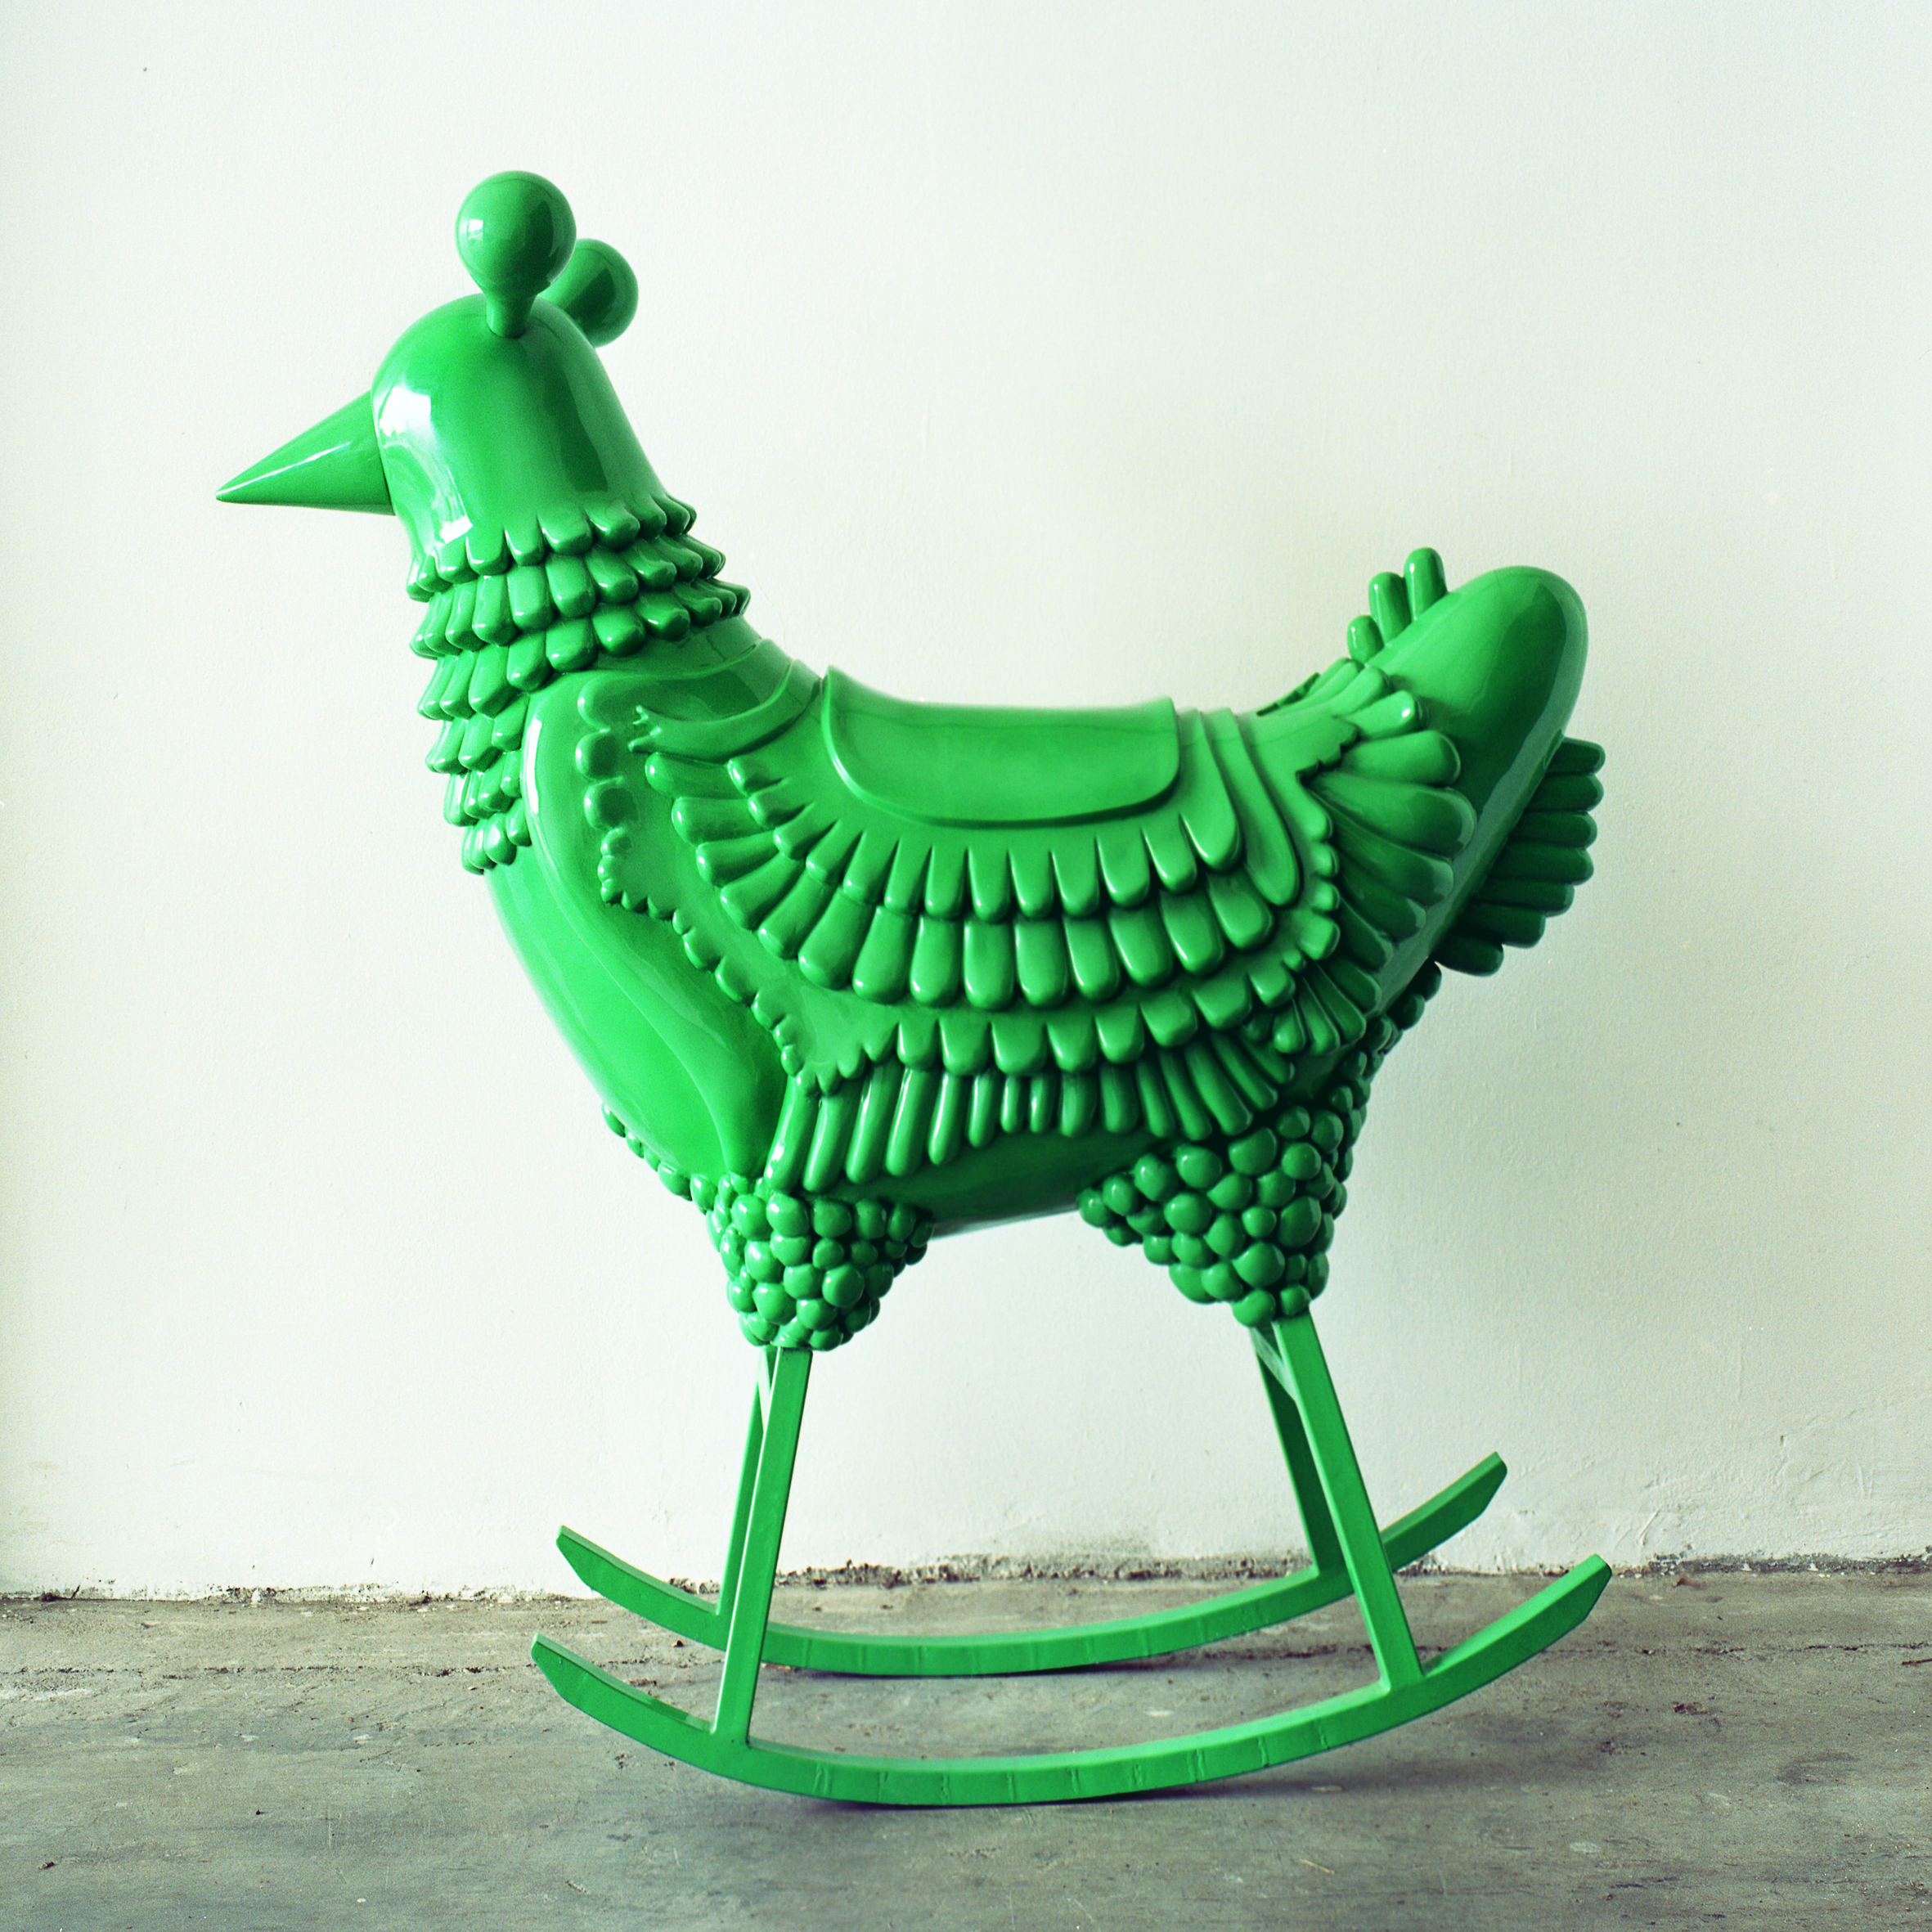 Jaime Hayon's scaled up Green Chicken transforms the humble bird into something sensation, turning it into a modern design piece.